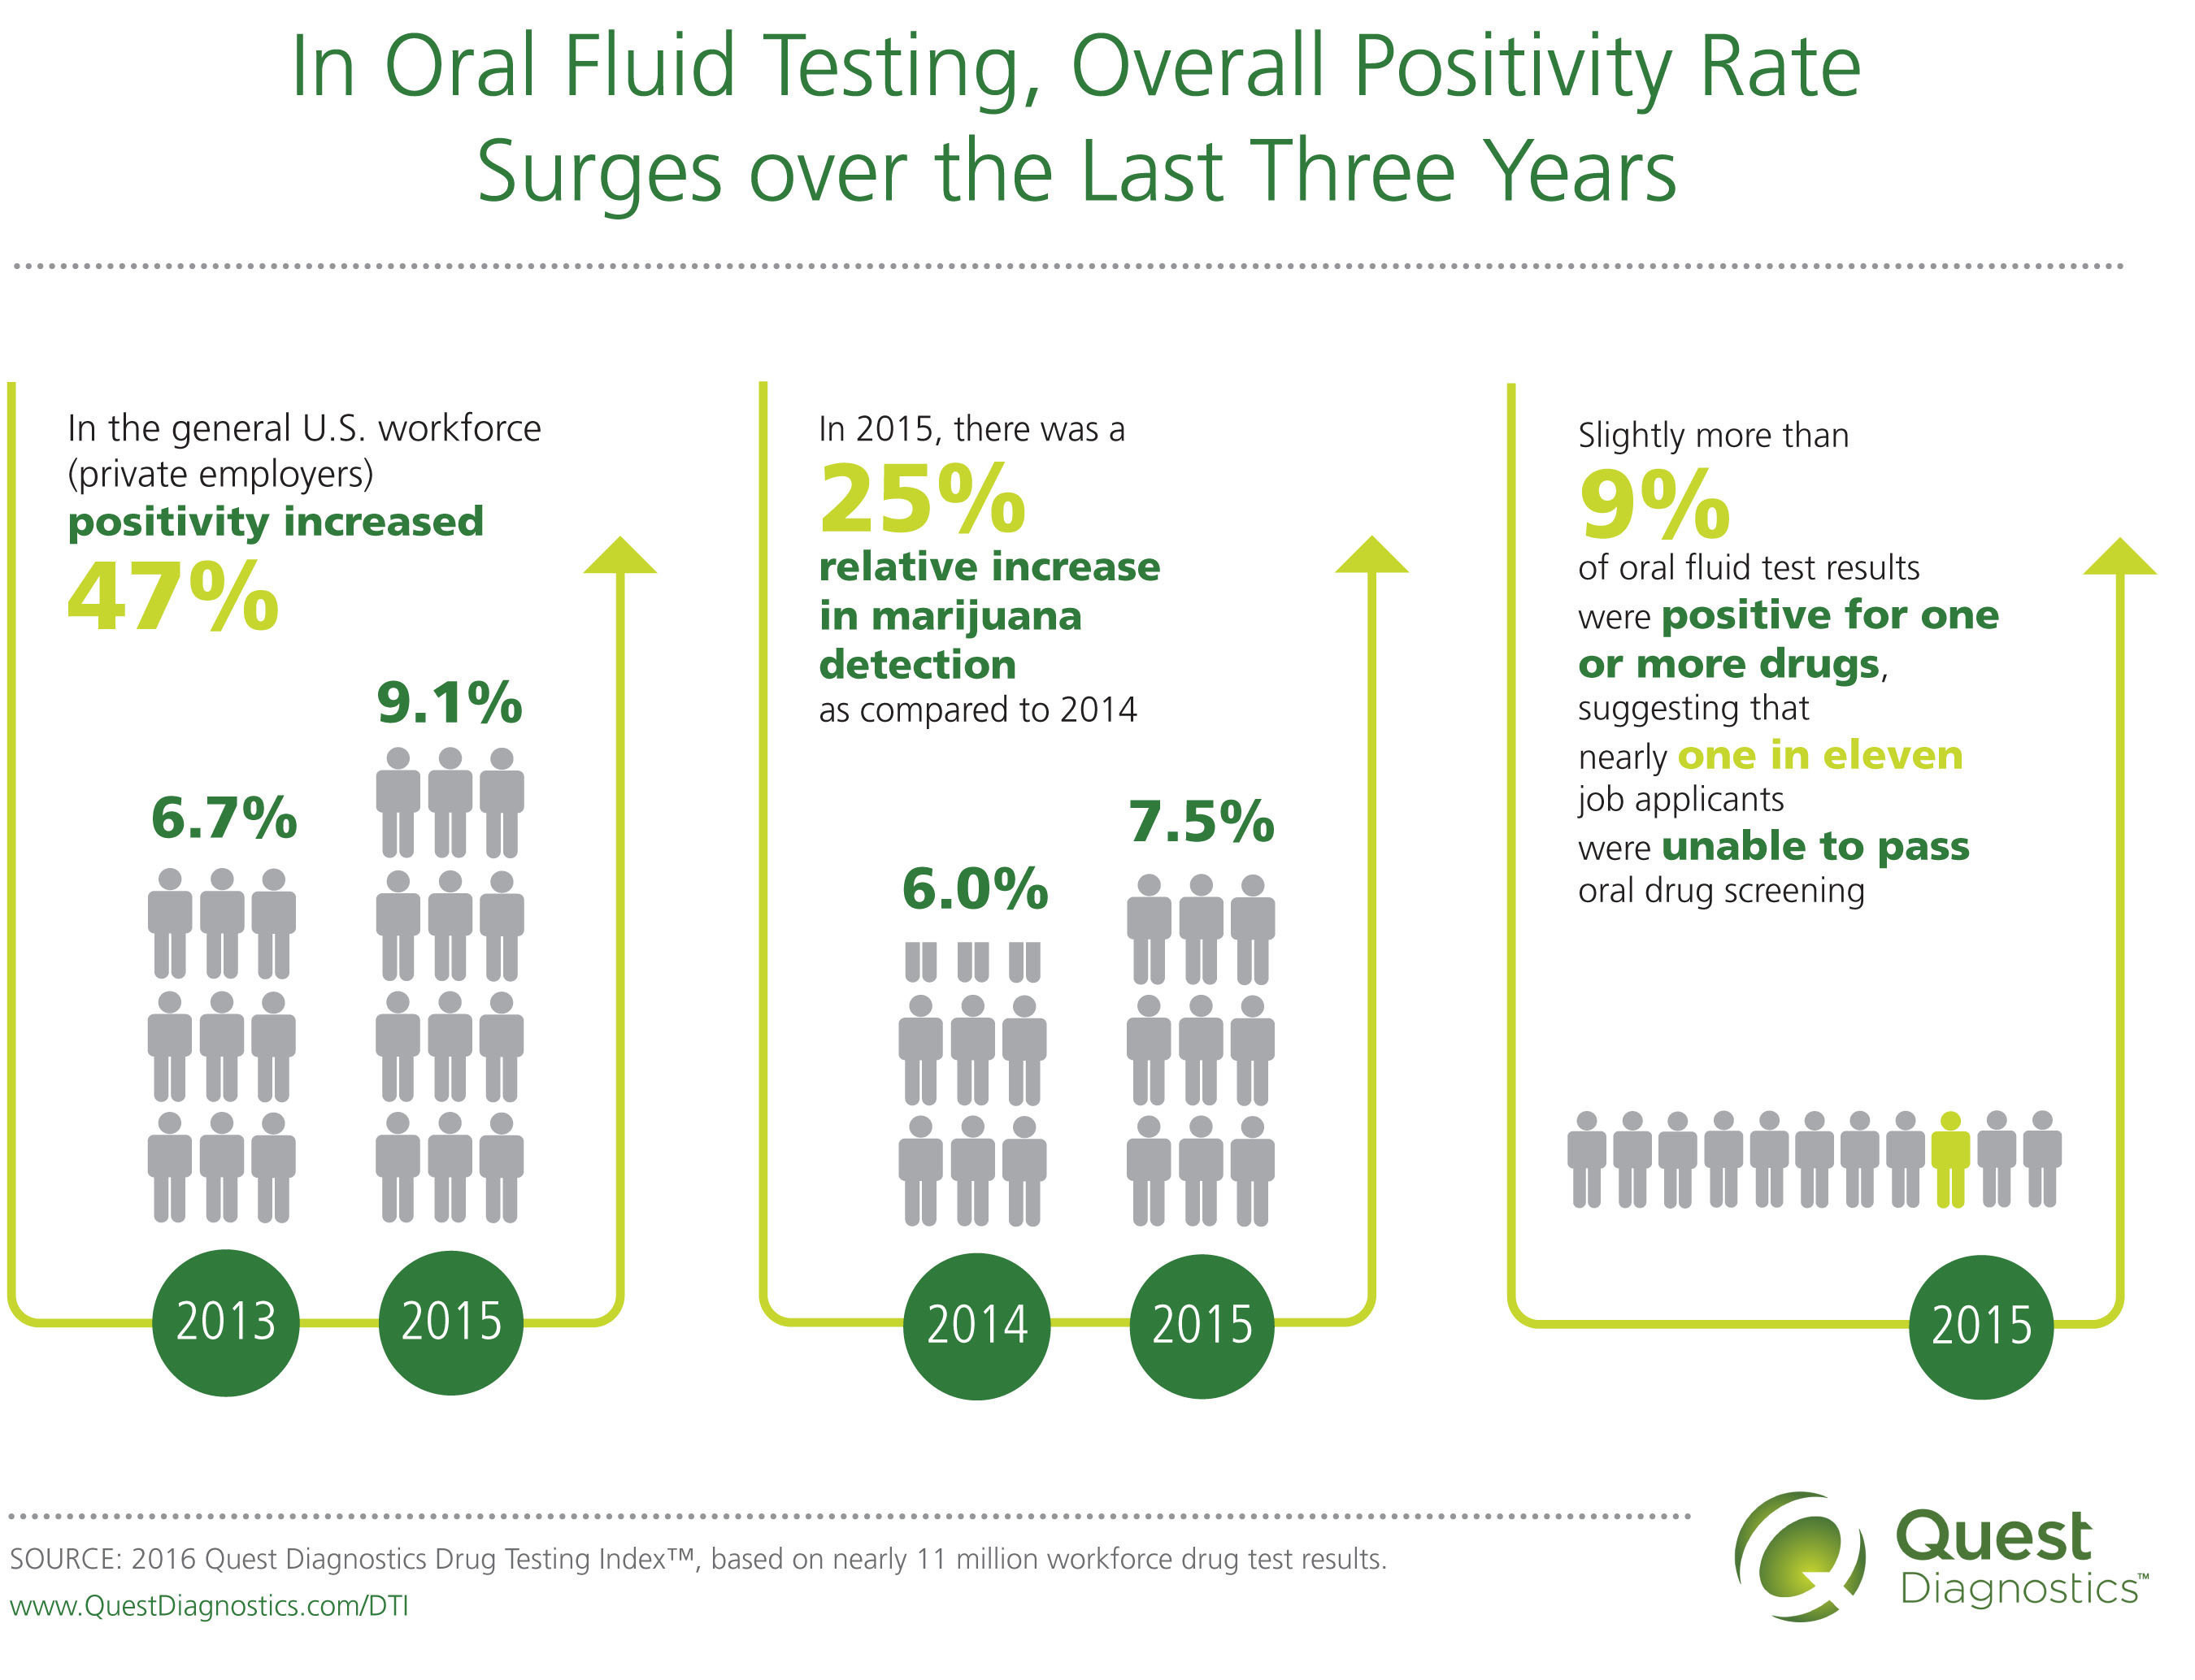 In Oral Fluid Testing, Overall Positivity Rate Surges over the Last Three Years